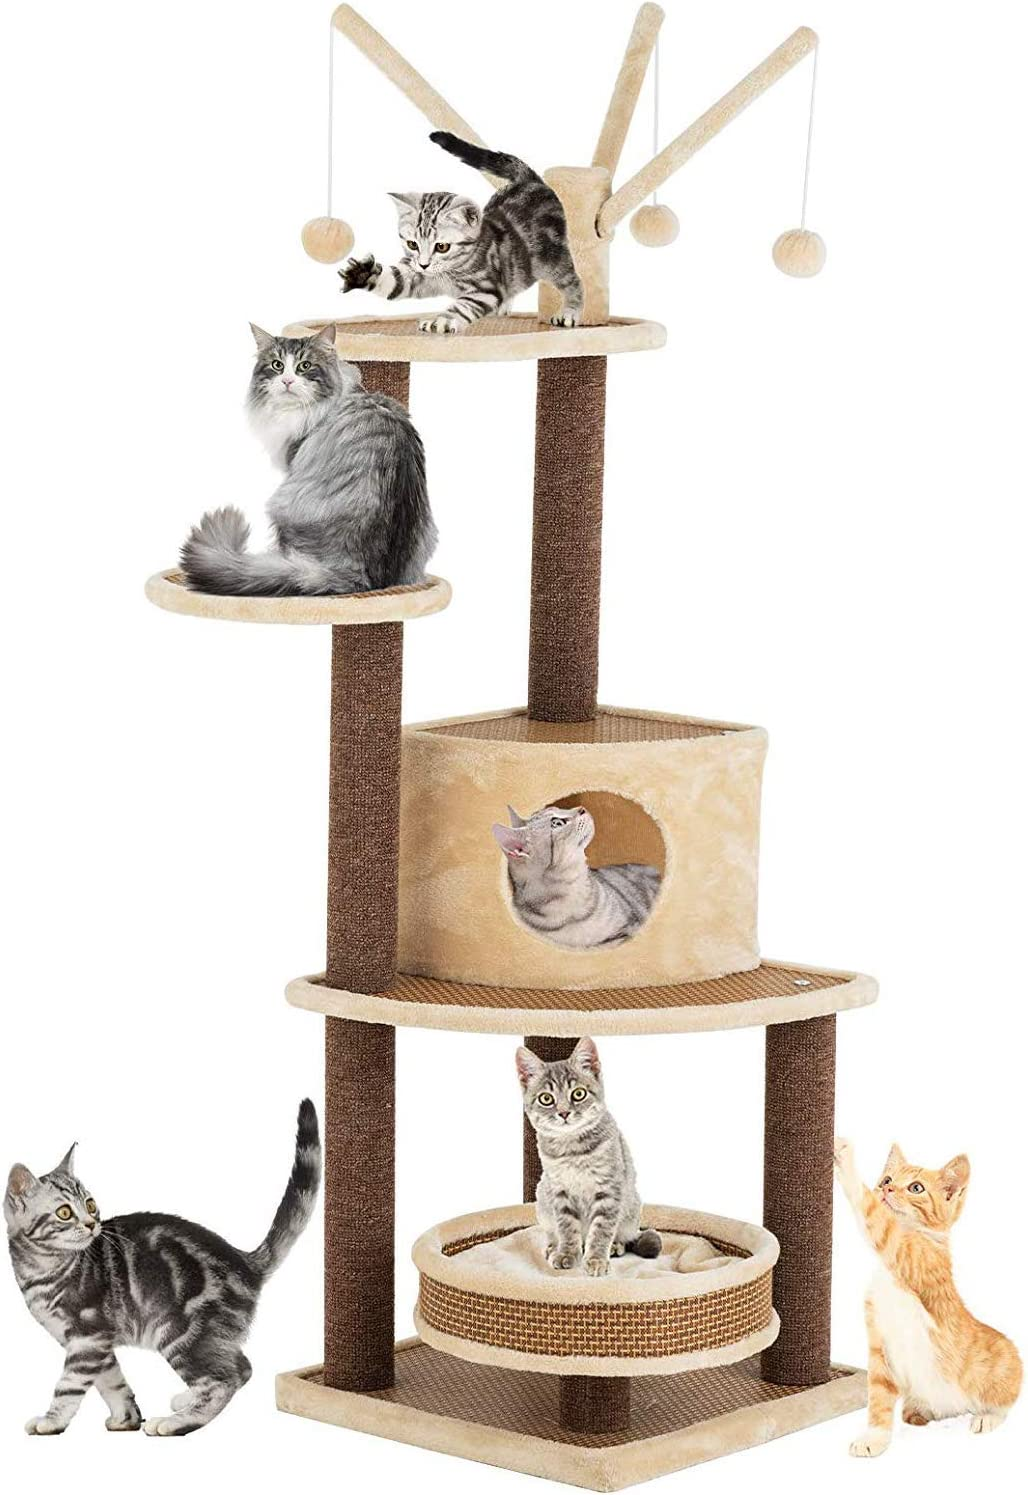 Suncoo Rattan Mat Style Cat Tree 59 Inch Modern Cat Furniture Kitten Activity Climbing Tower Pets House With Removable And Washable Mats Multi Level Scratching Post Condo Toys Gazebo Pet